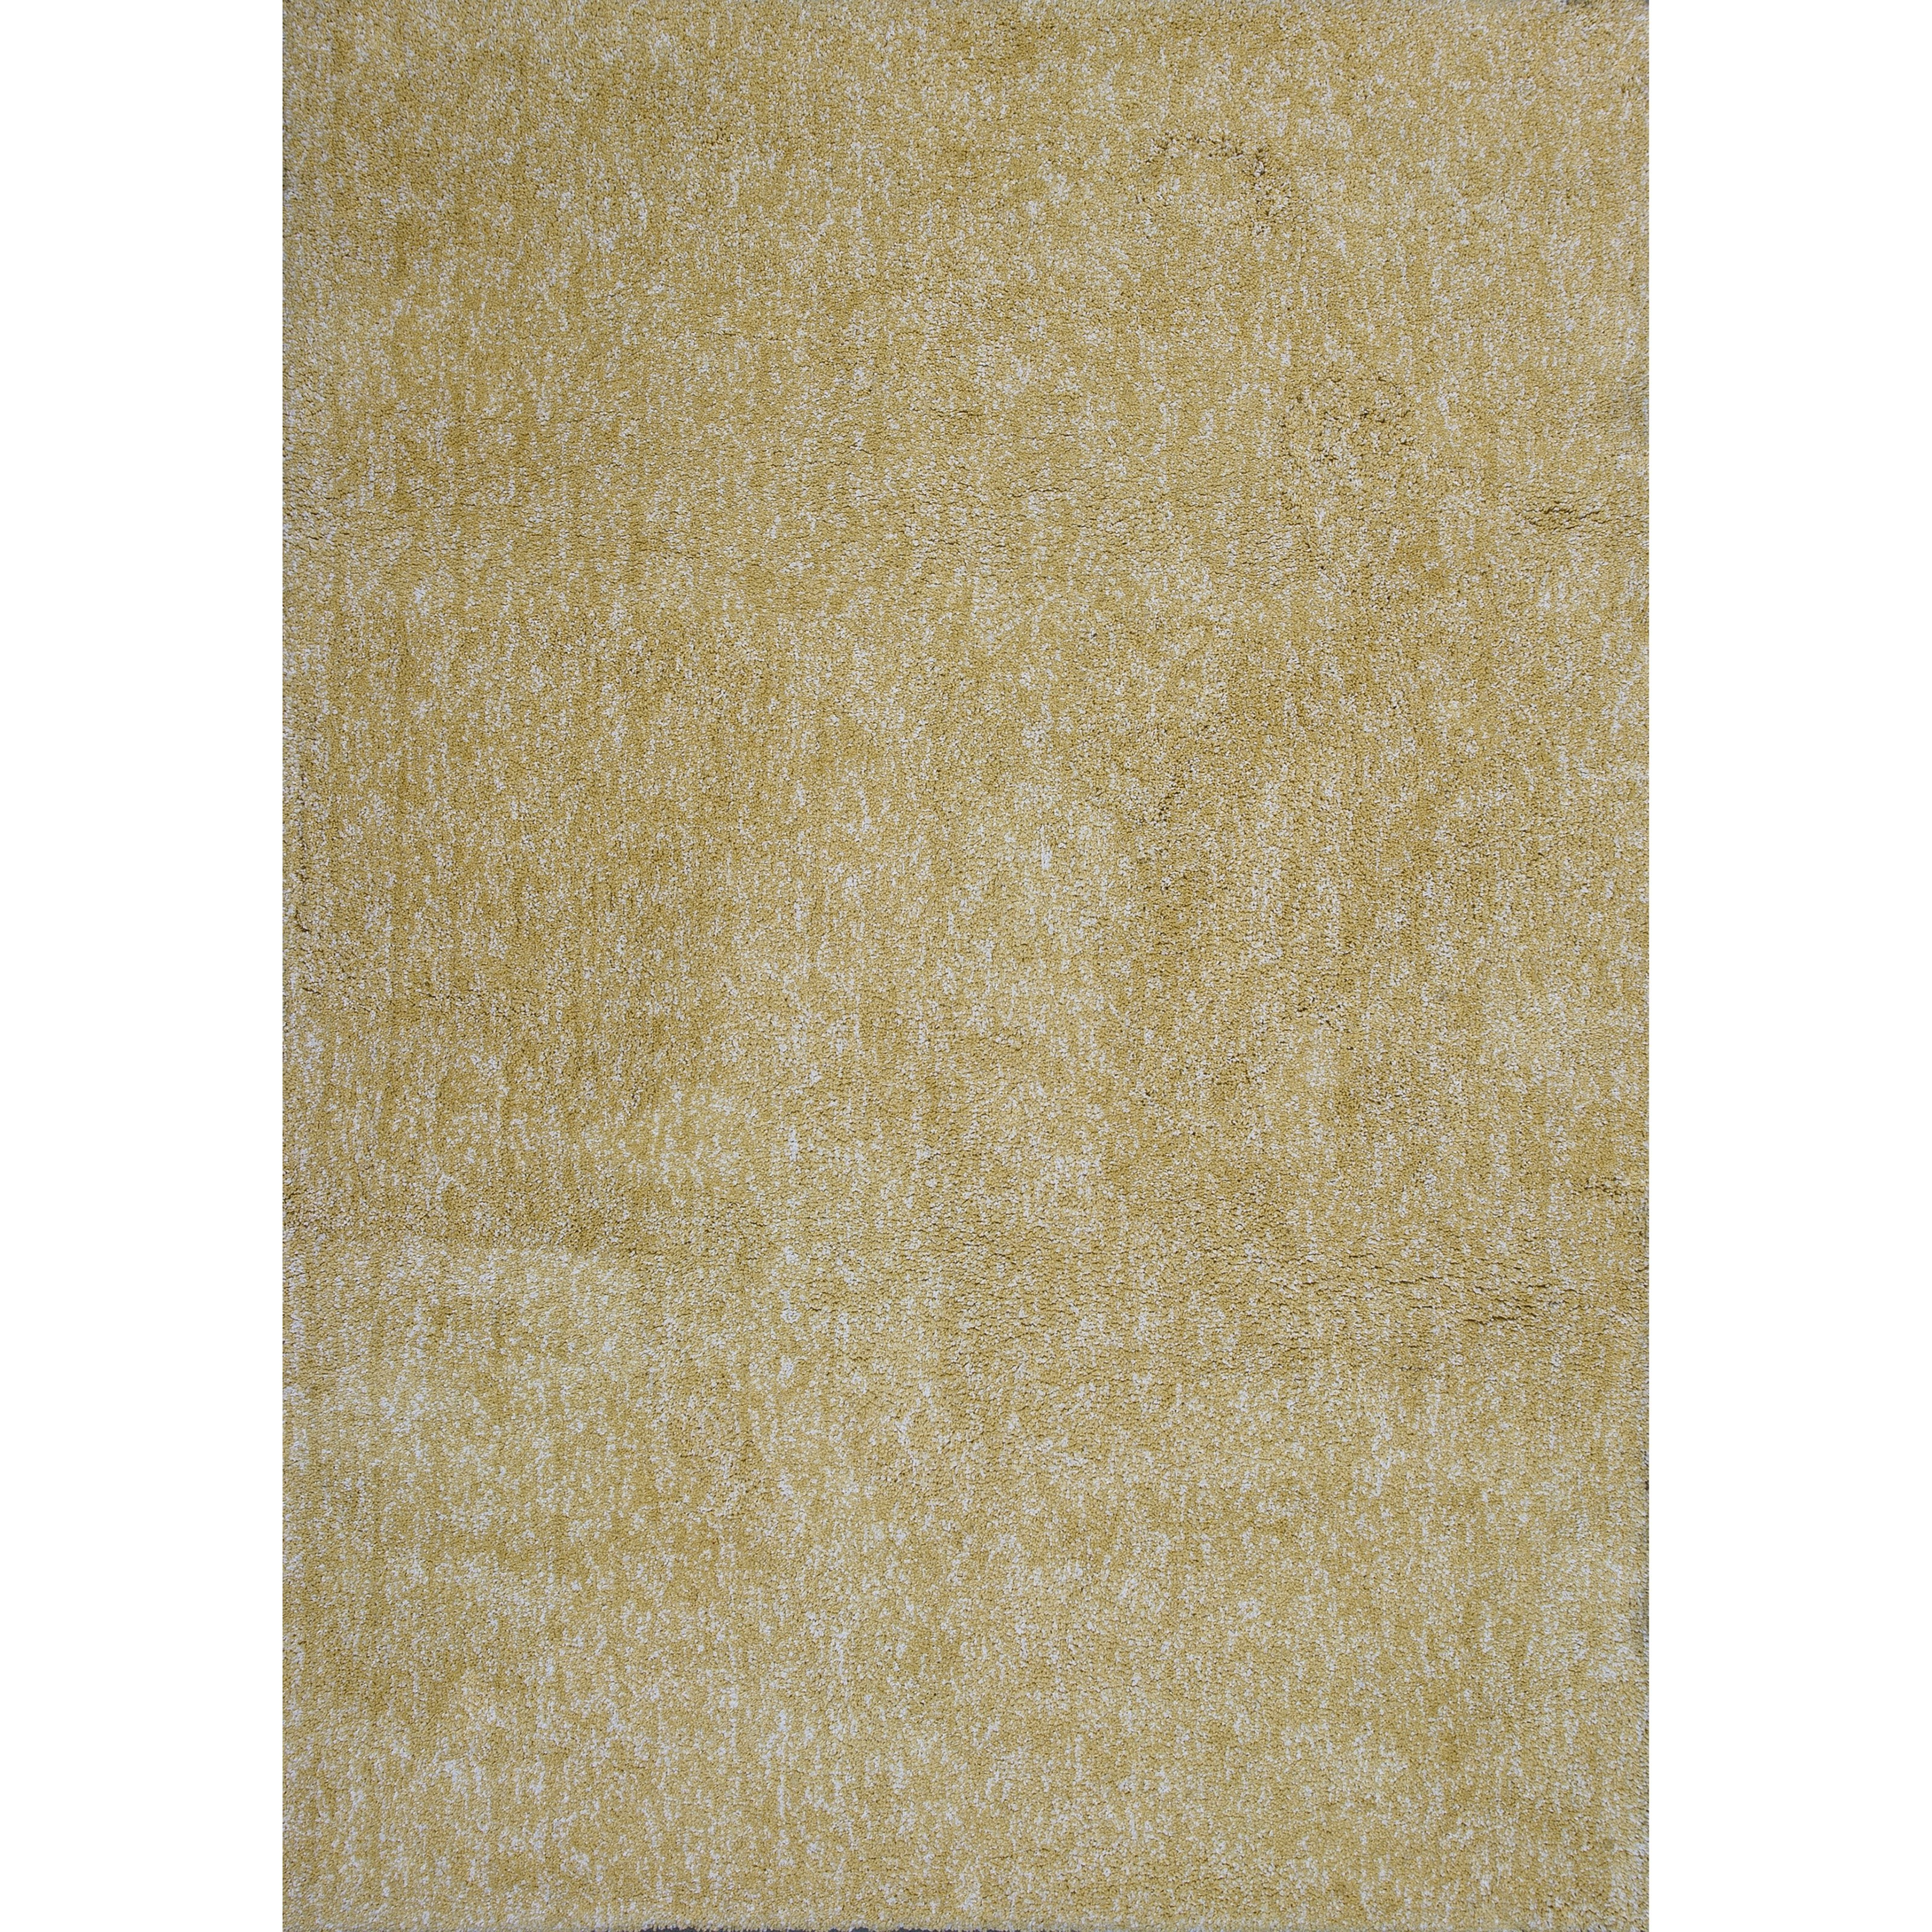 "Bliss 7'6"" X 9'6"" Yellow Heather Shag Area Rug by Kas at Zak's Home"